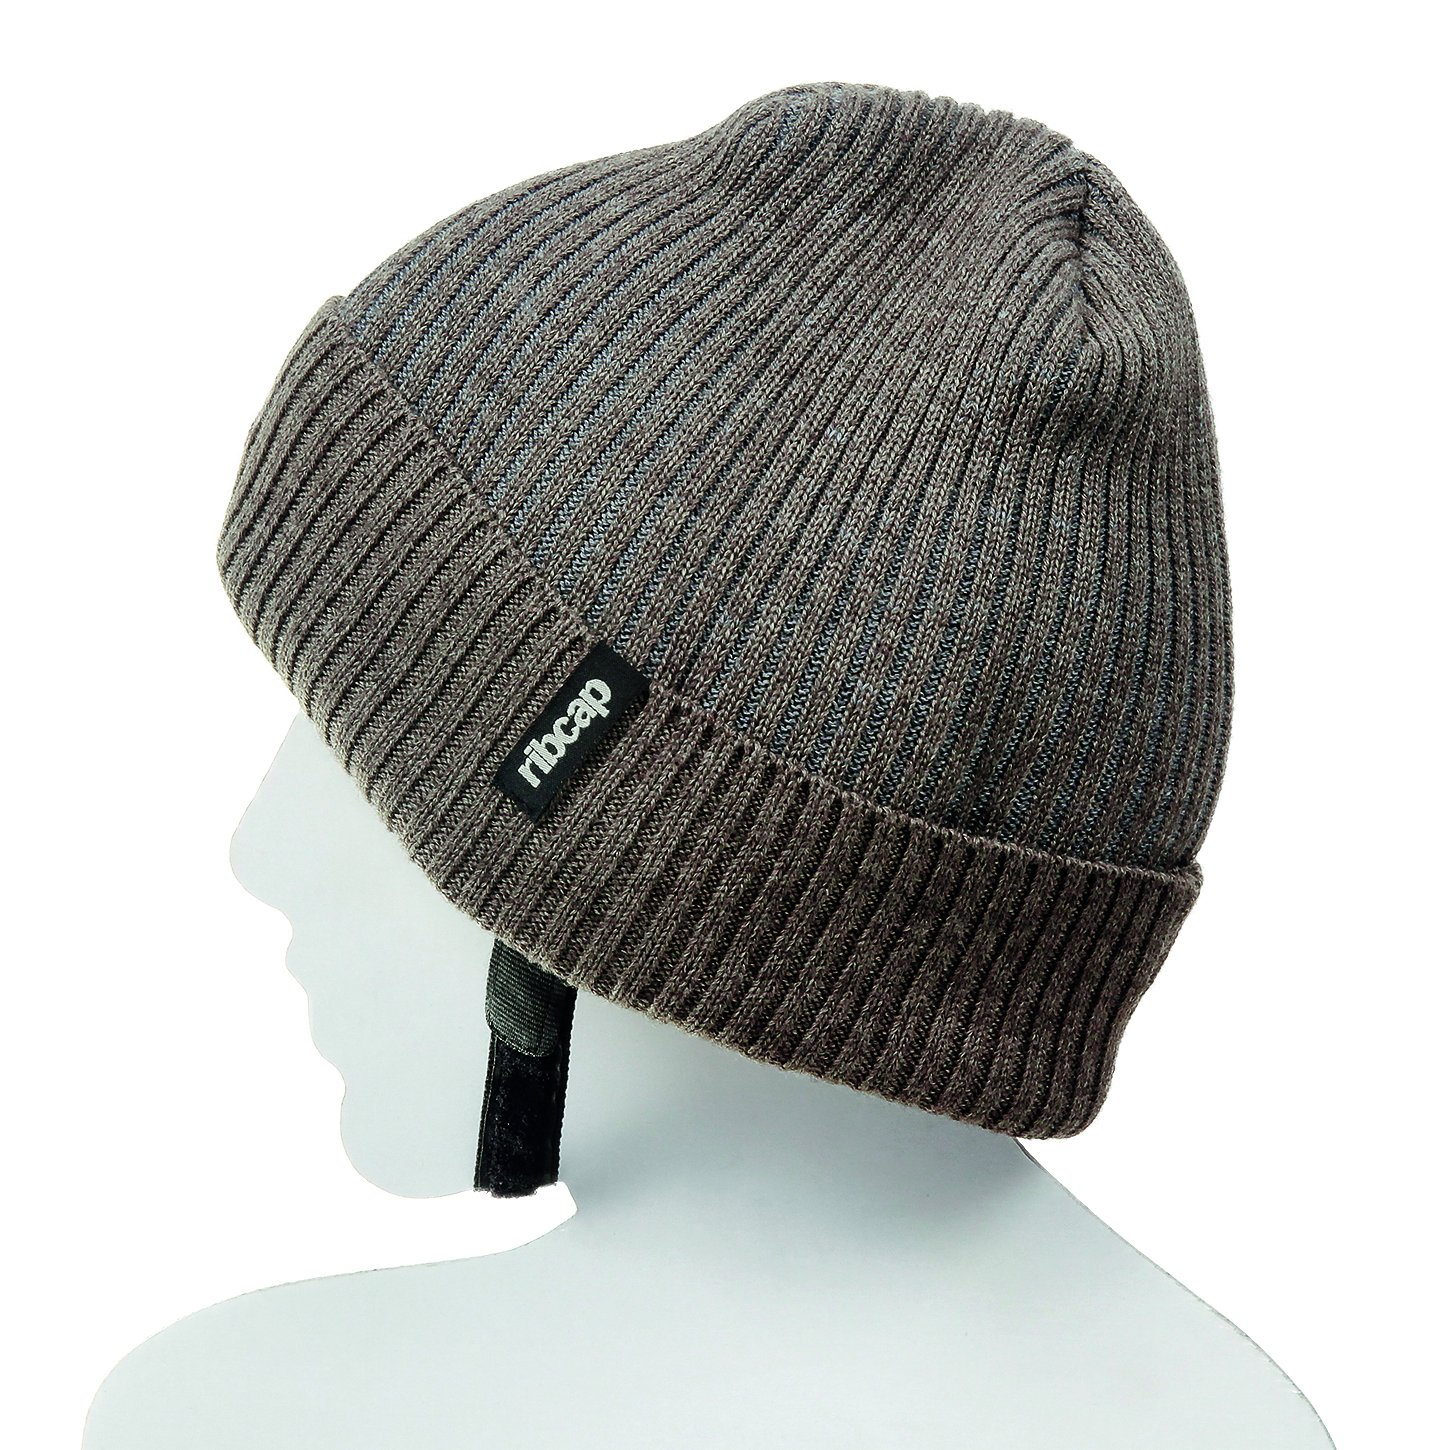 The All New Premium Original Ribcap - Iggy Beanie Cap (Large, Brown) by Ribcap